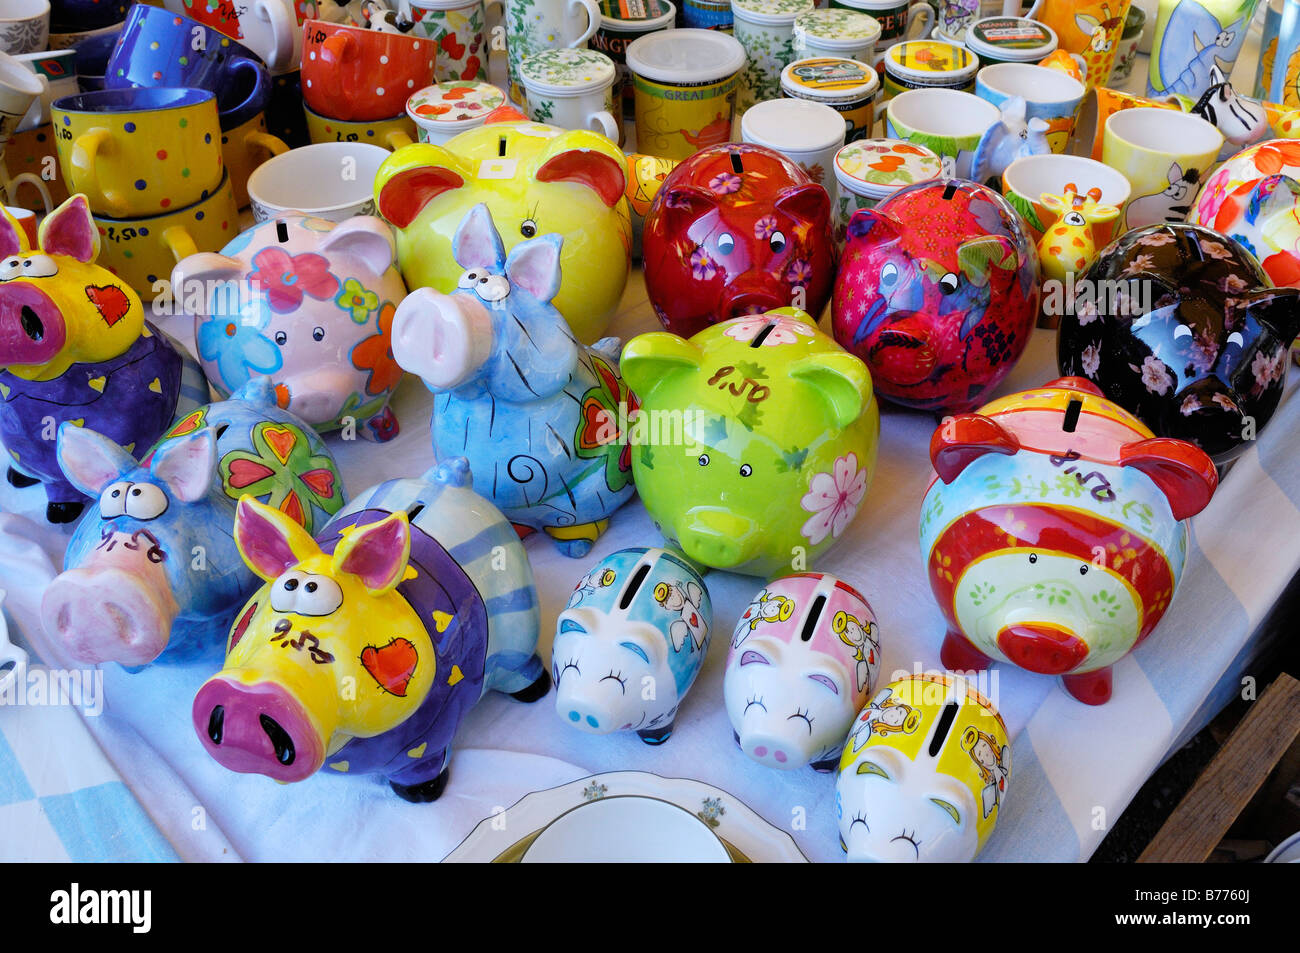 Piggy banks, Auer Dult, Munich, Bavaria, Germany, Europe - Stock Image